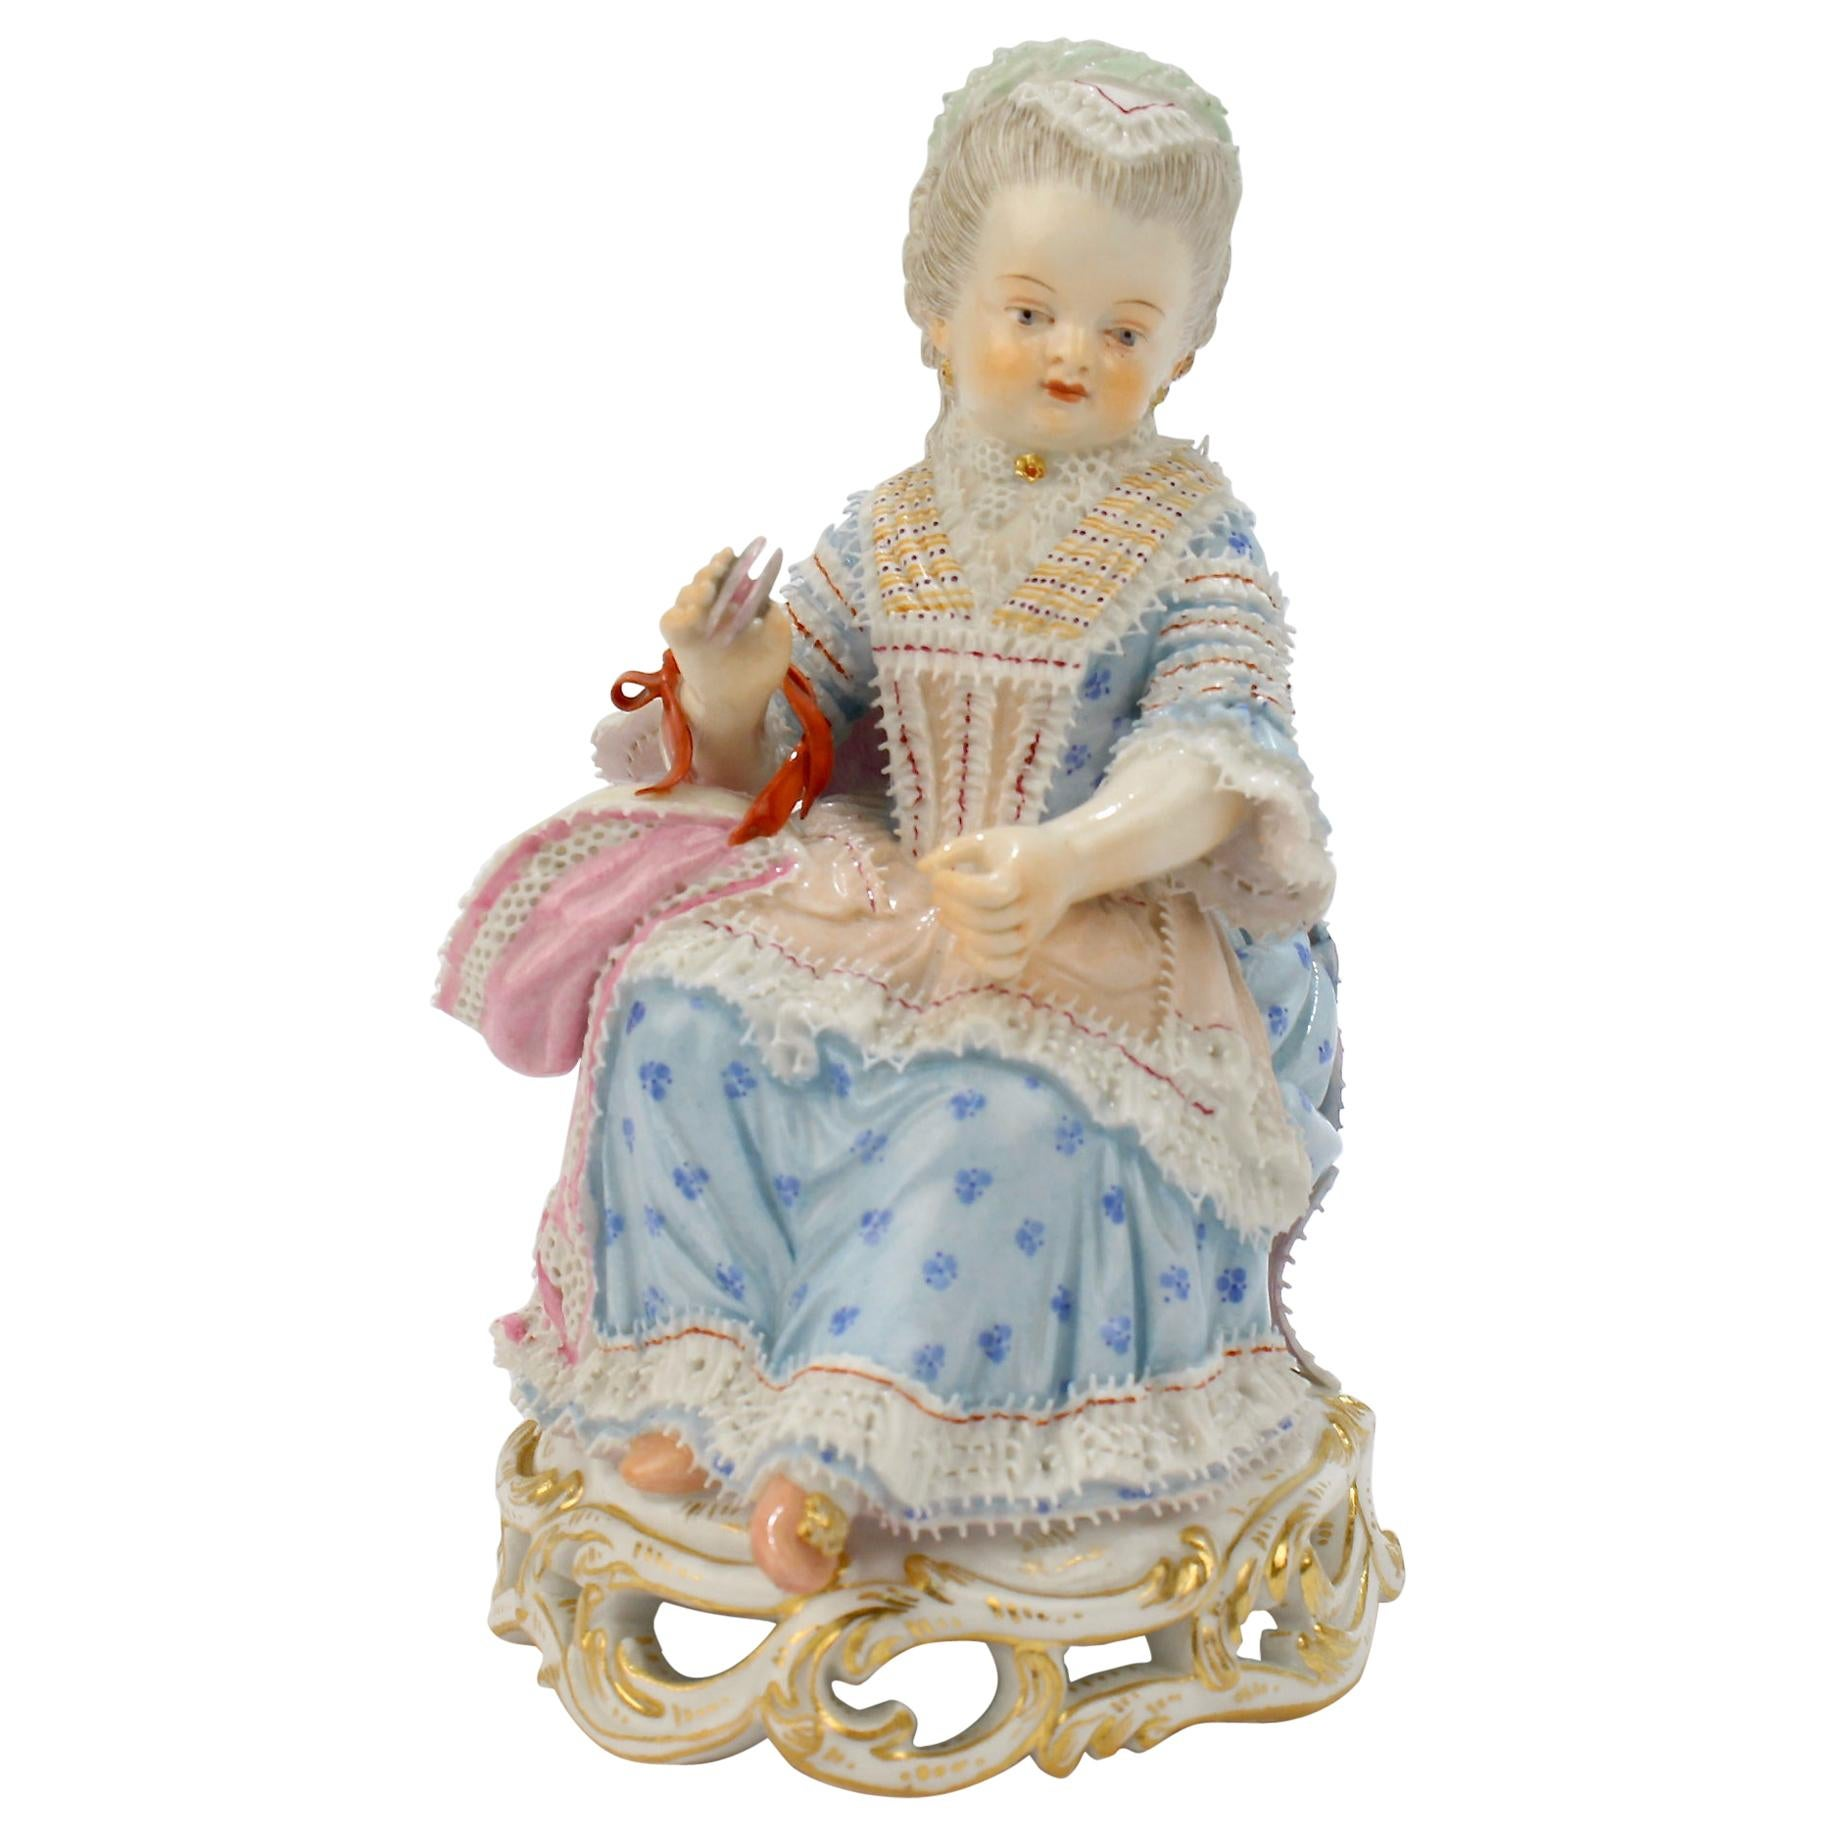 Antique Meissen Porcelain Figurine of a Girl with a Thread Winder Model No. C 28